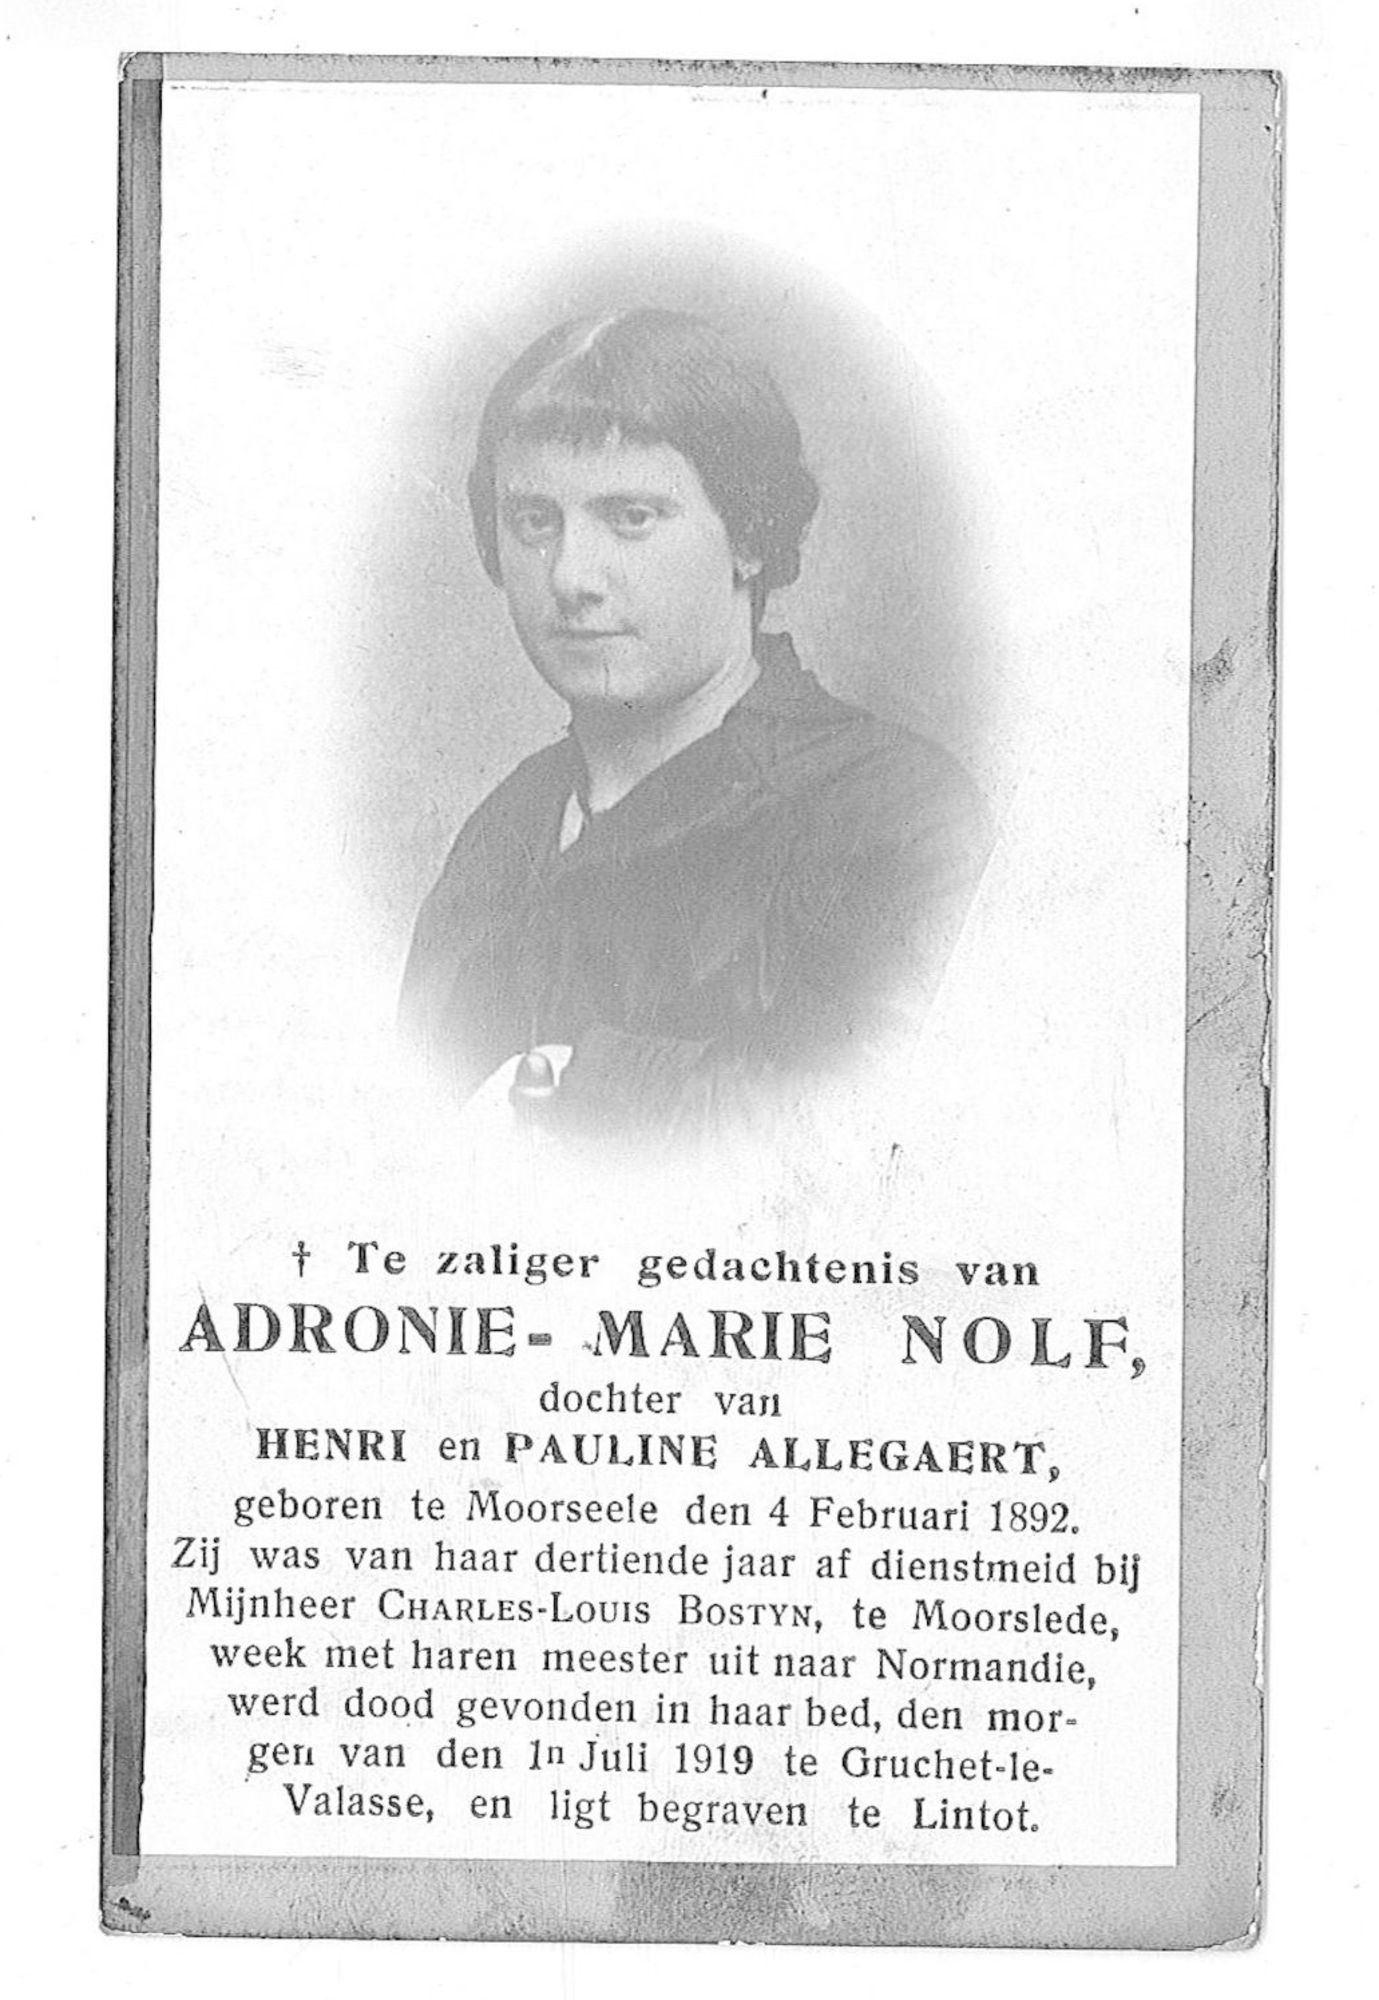 Adrone-Marie Nolf